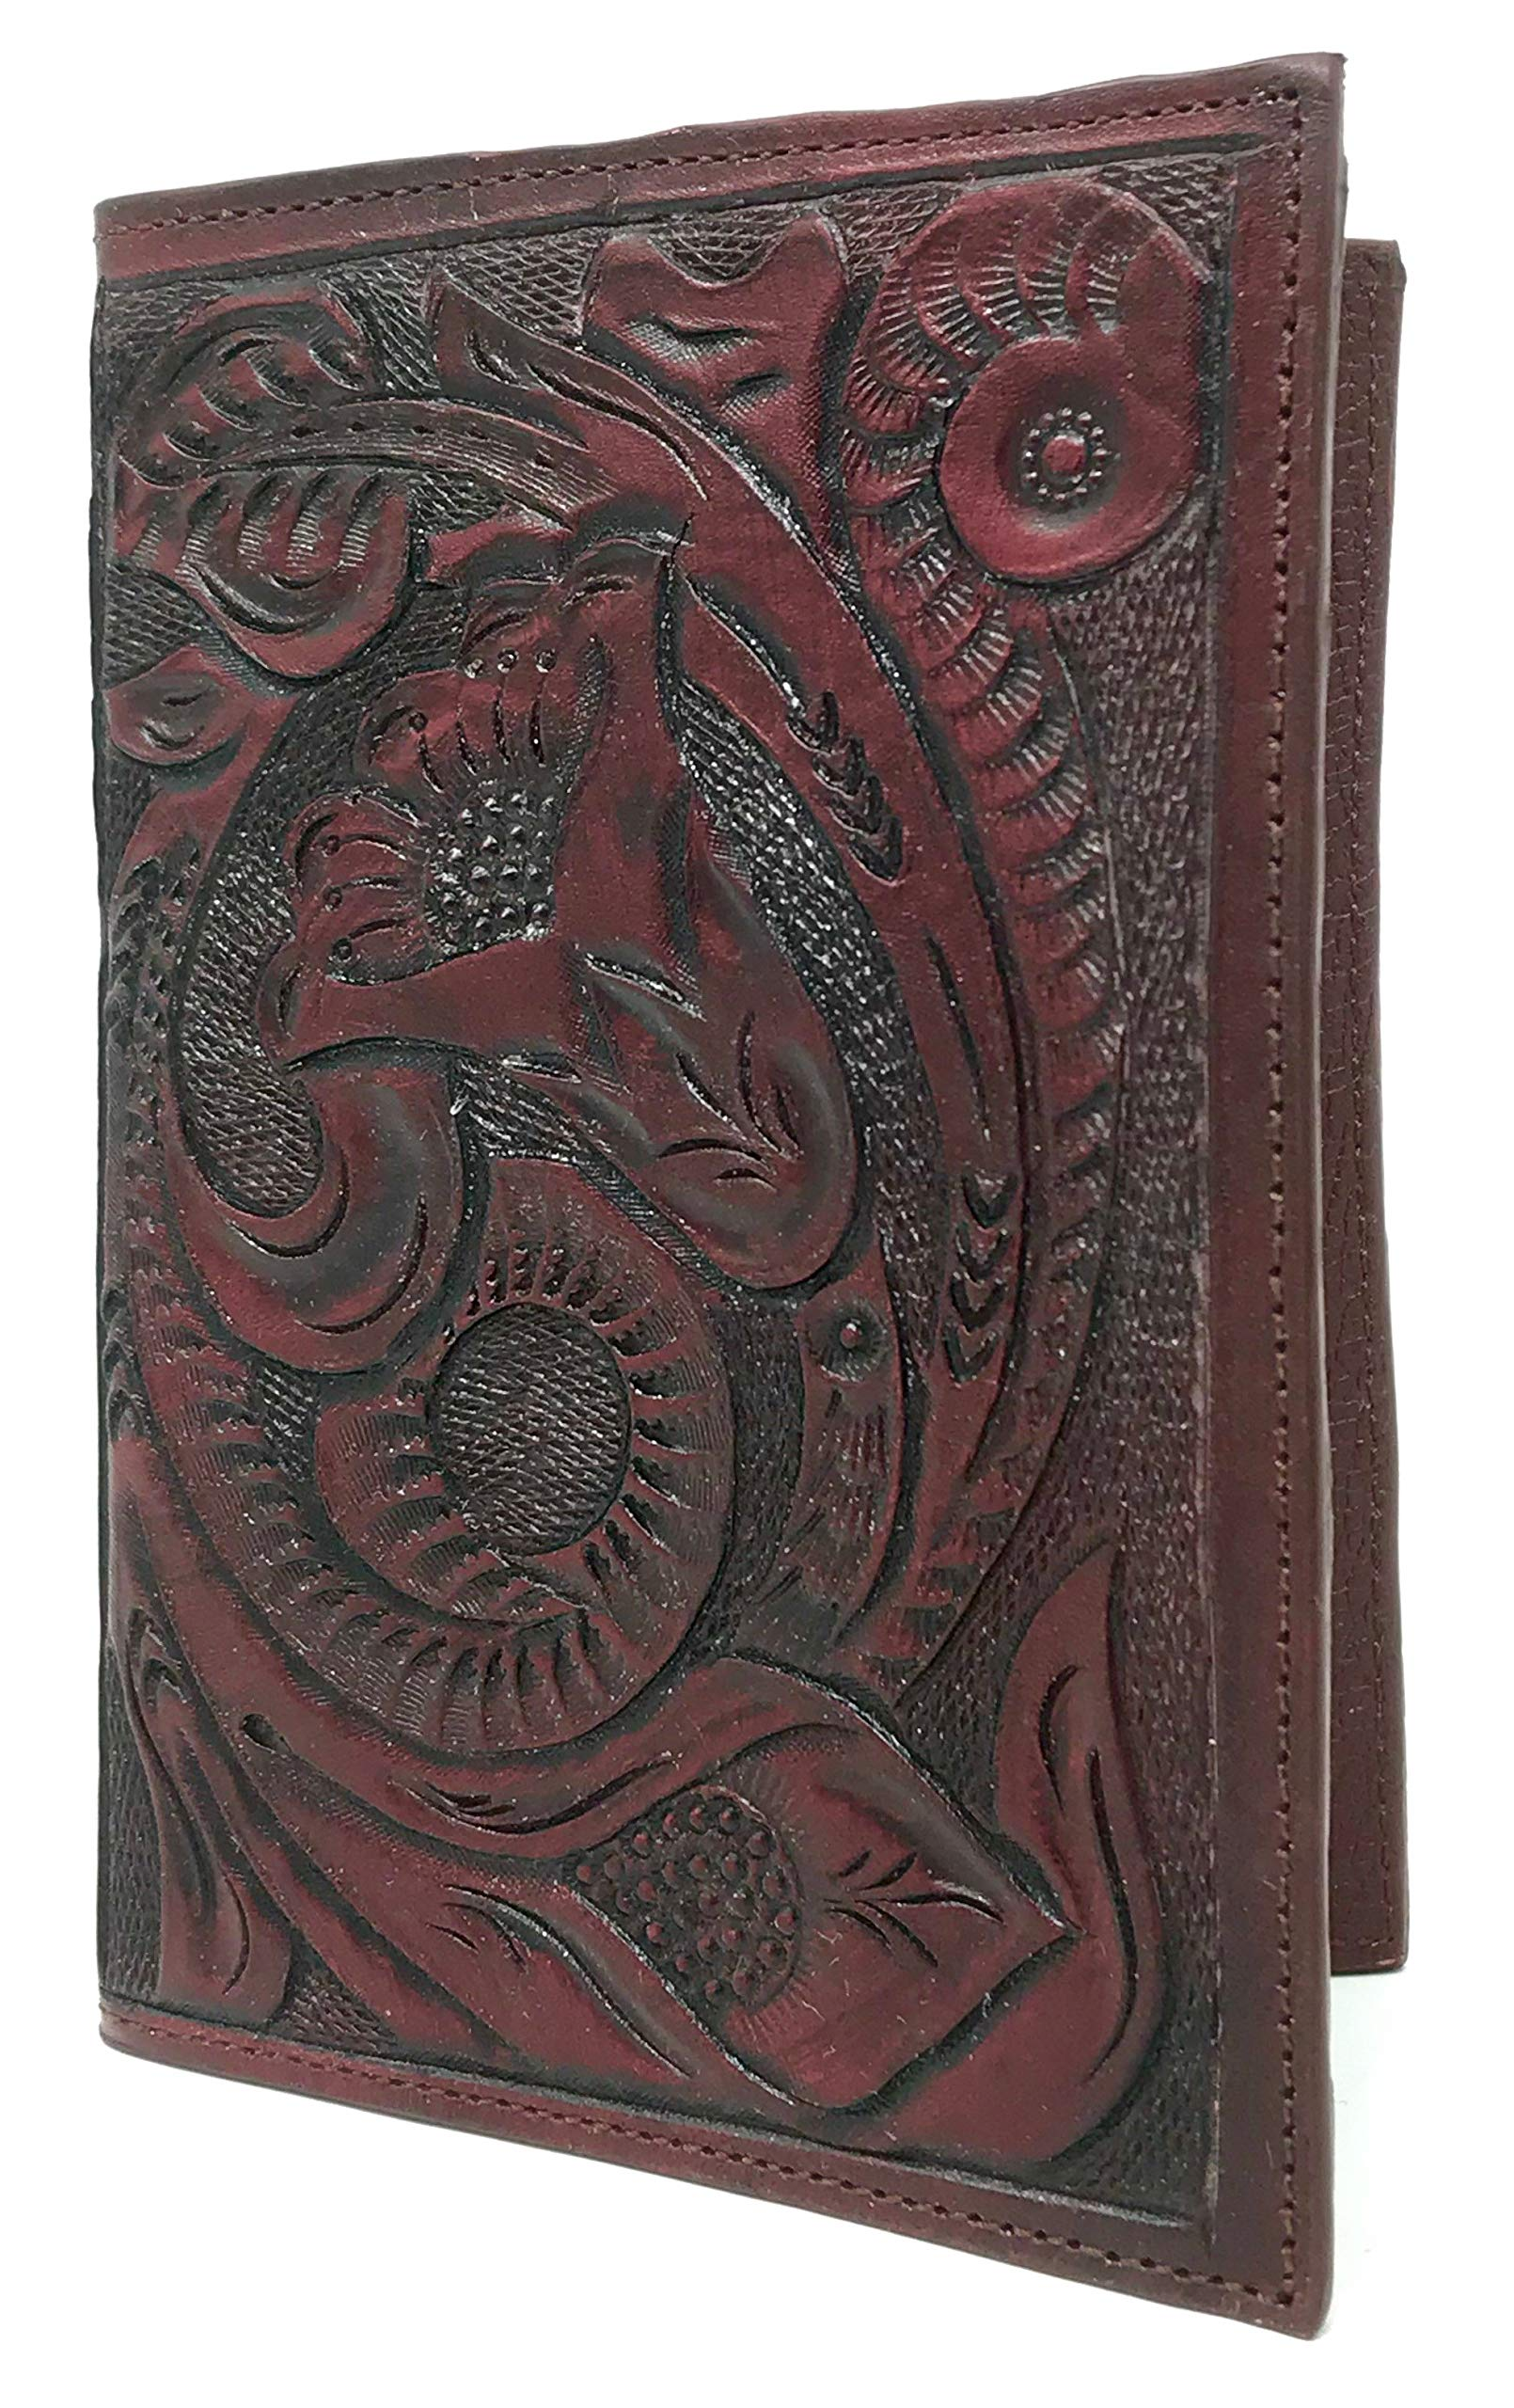 Mauzari Passport Holder for Women Hand Tooled Leather Designer Vintage (Mahogany)